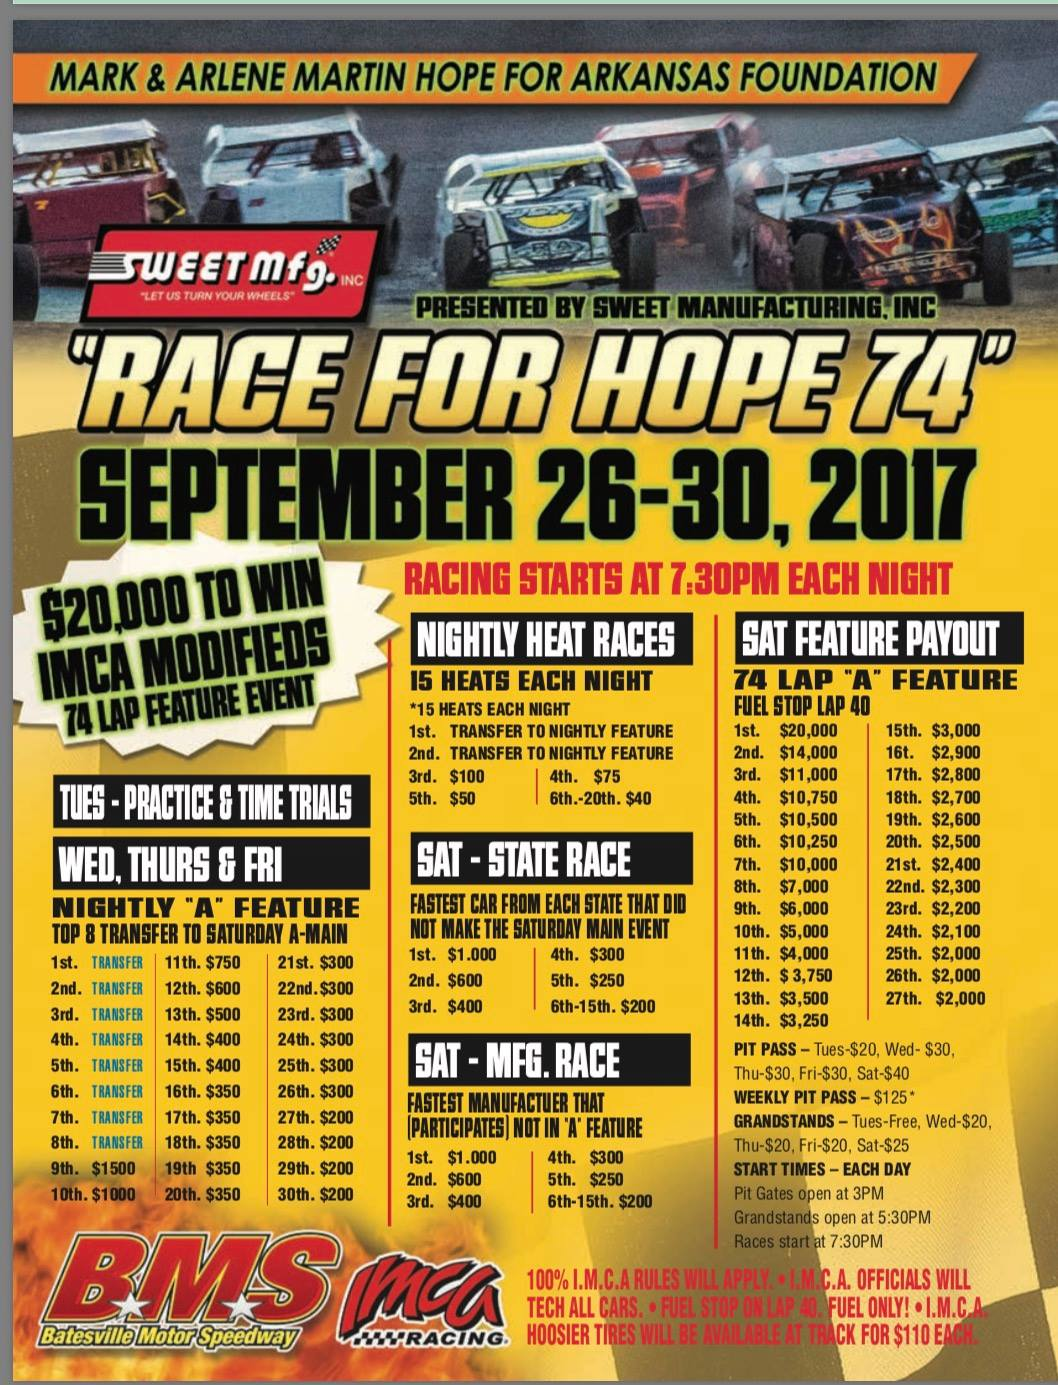 2017 Race for Hope 74 Payout